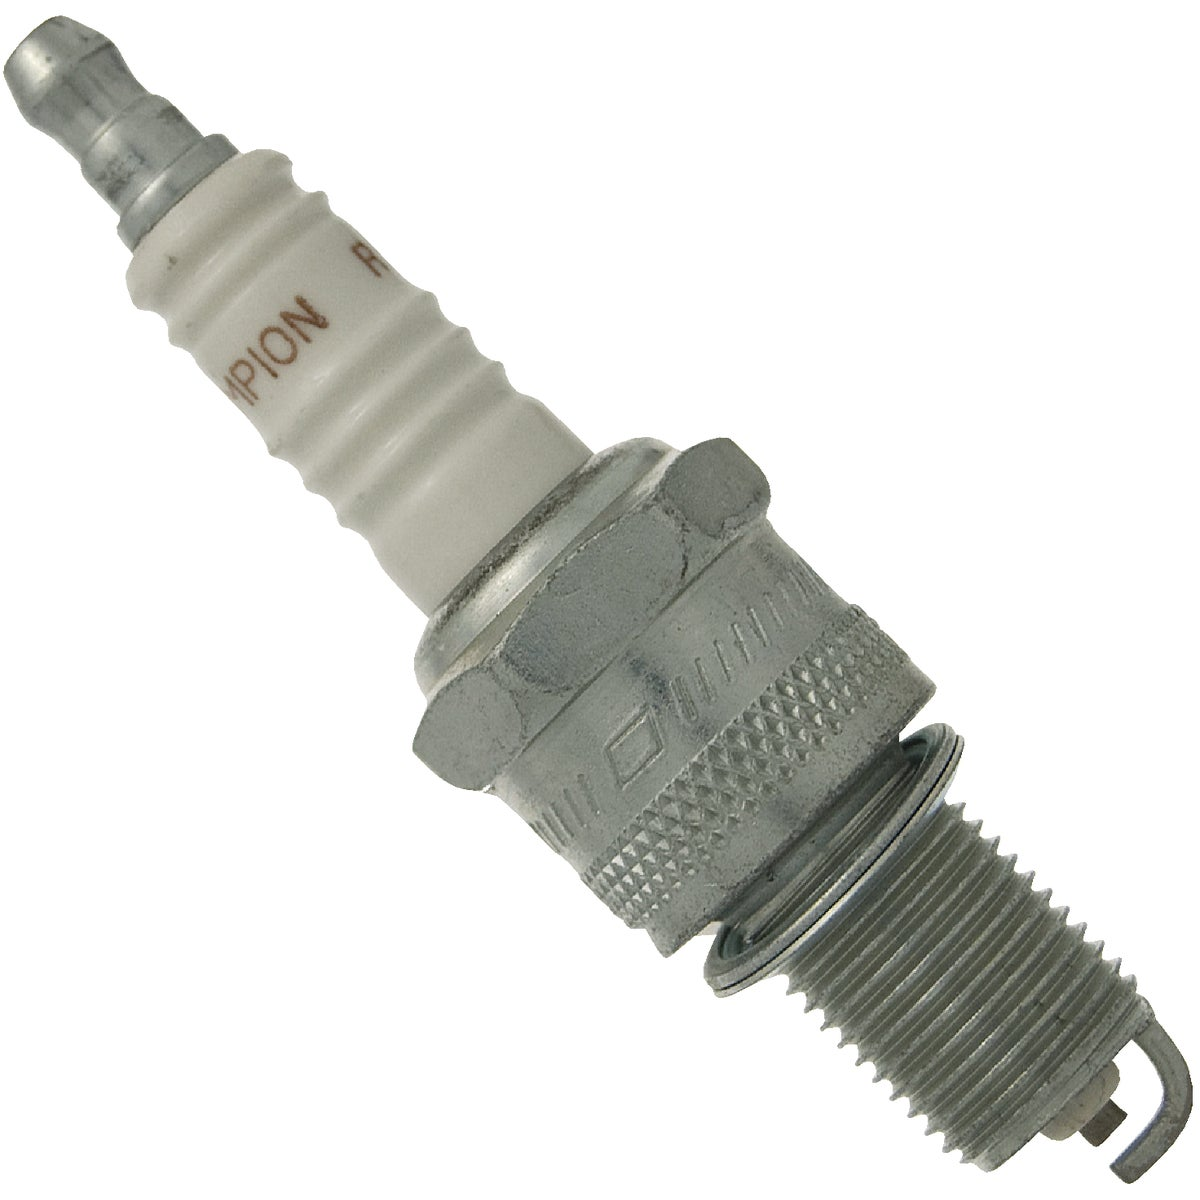 RN9YC SPARK PLUG - 415 by Federal Mogul